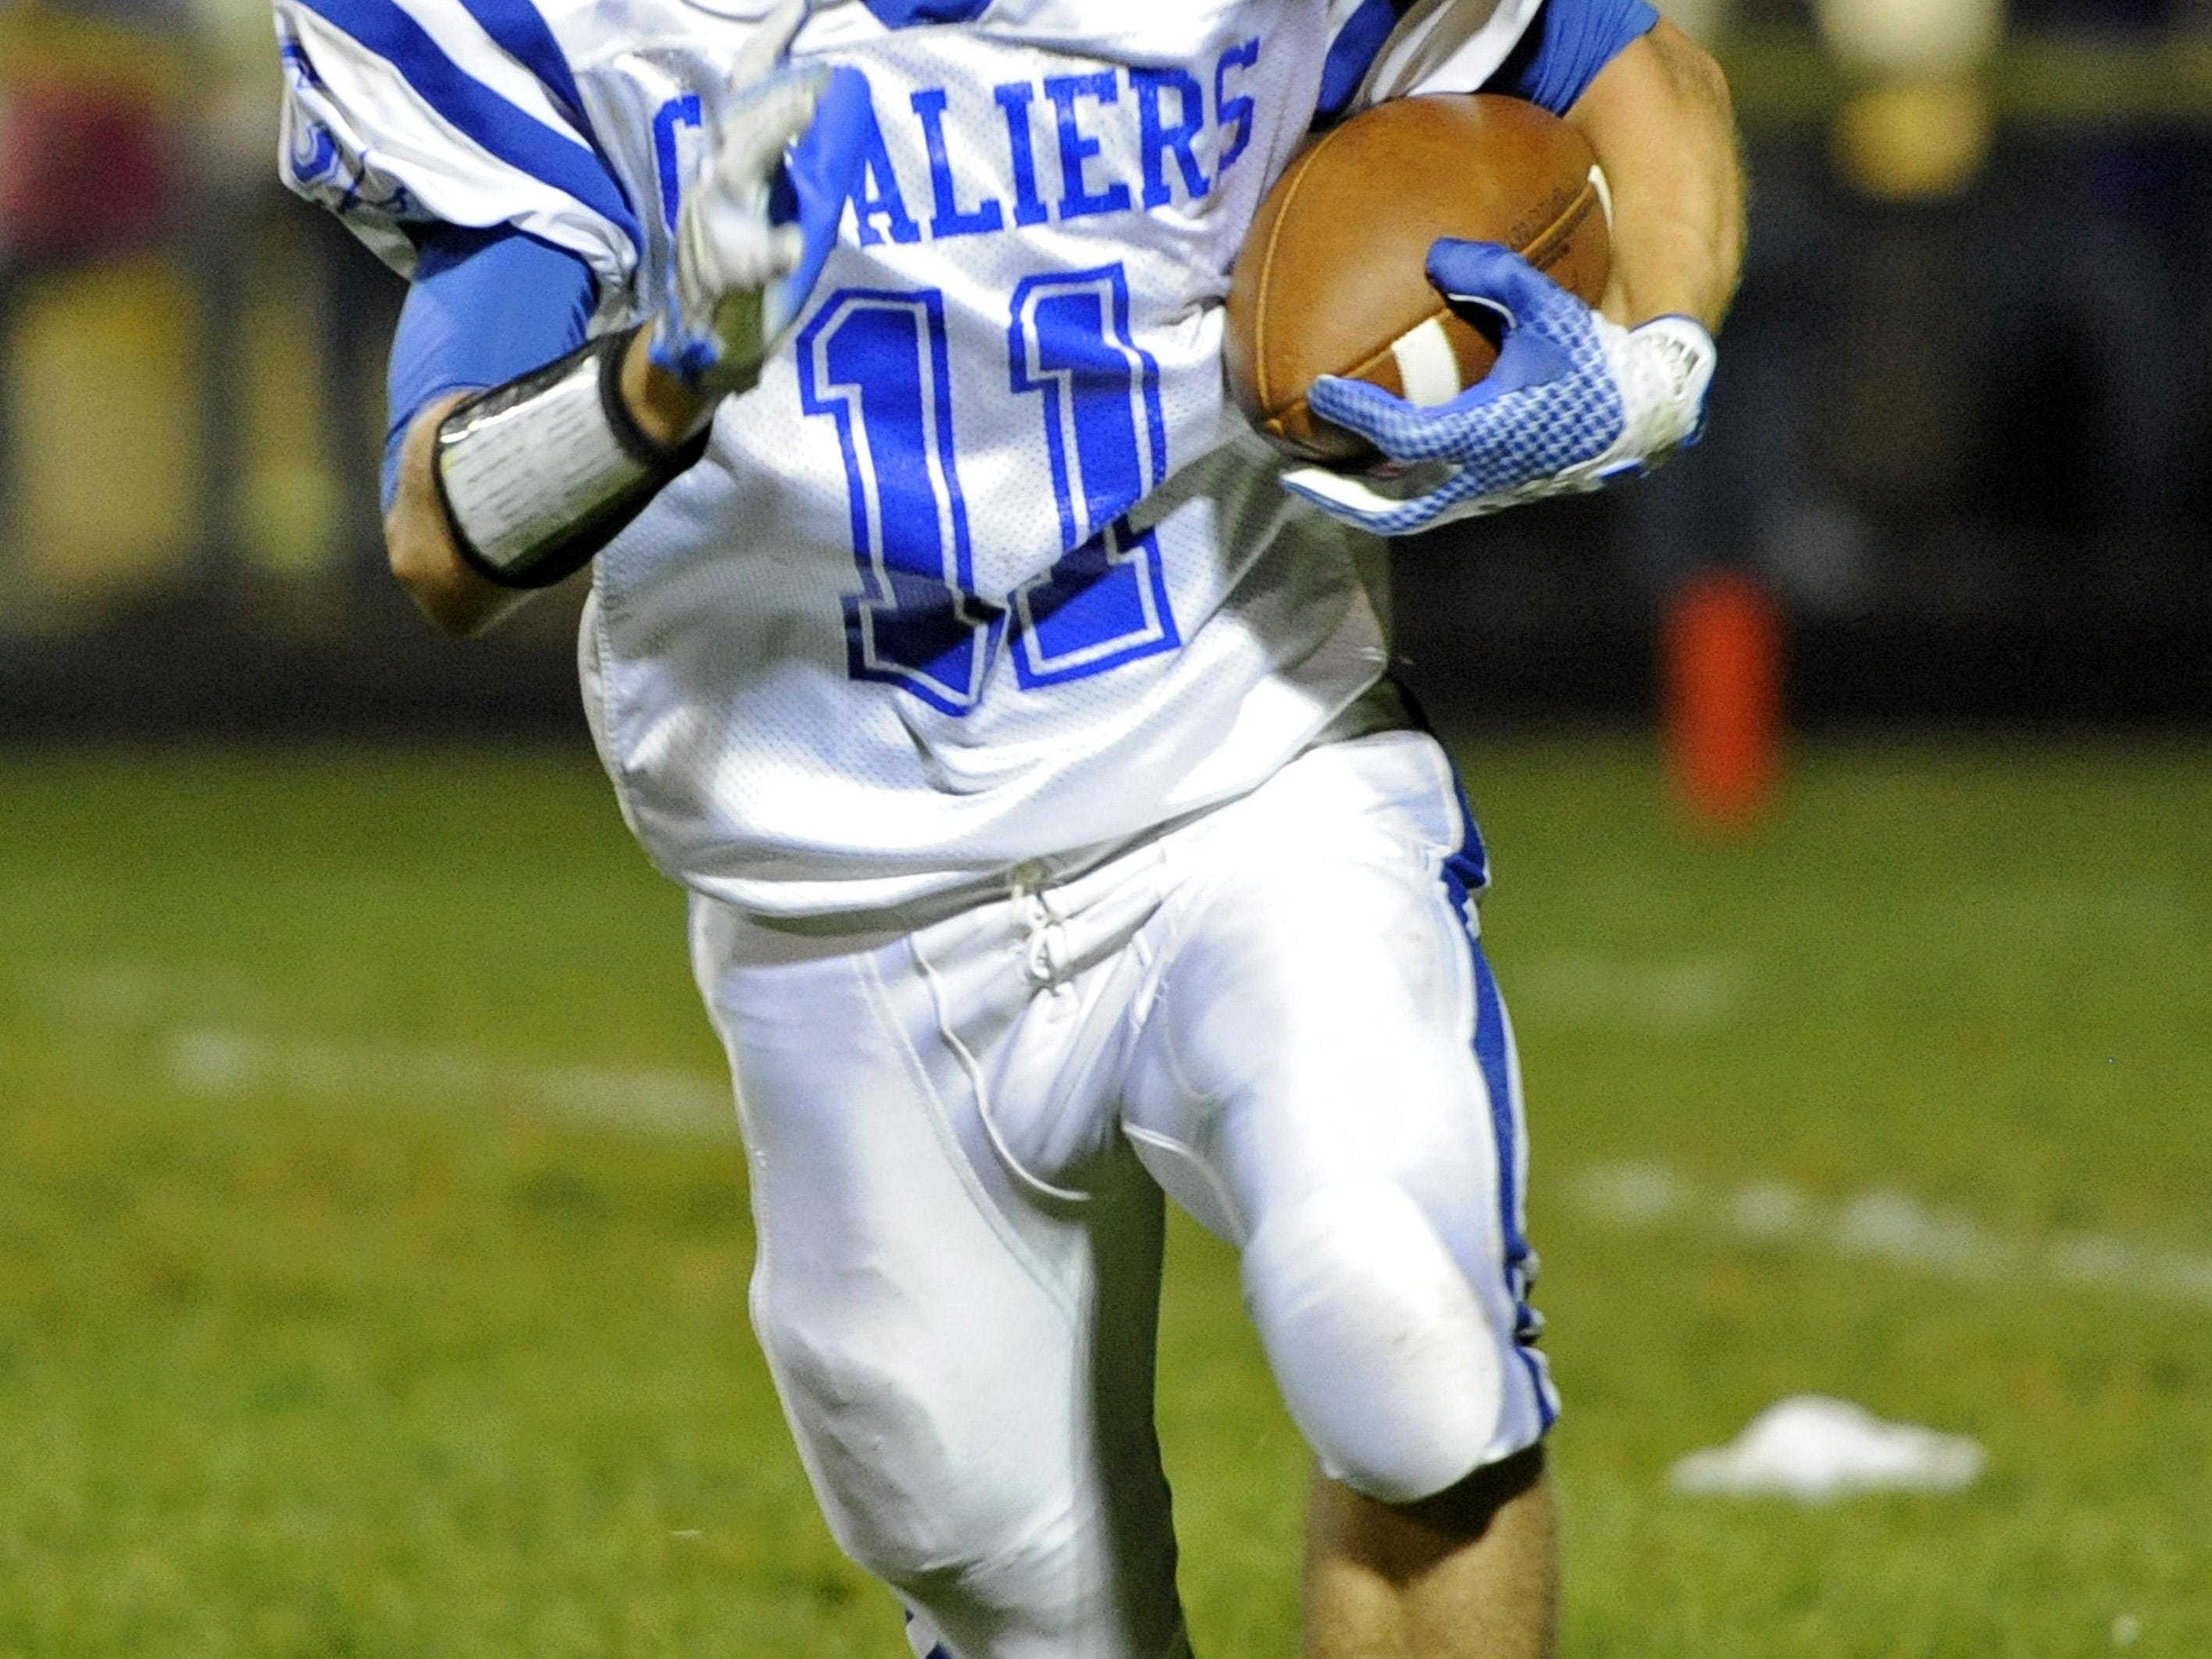 Chillicothe running back Nate Rosenbauer carries the ball during the first half of a 2014 game against McClain. Rosenbauer will be at the center of the Cavaliers' offensive plans in 2015.